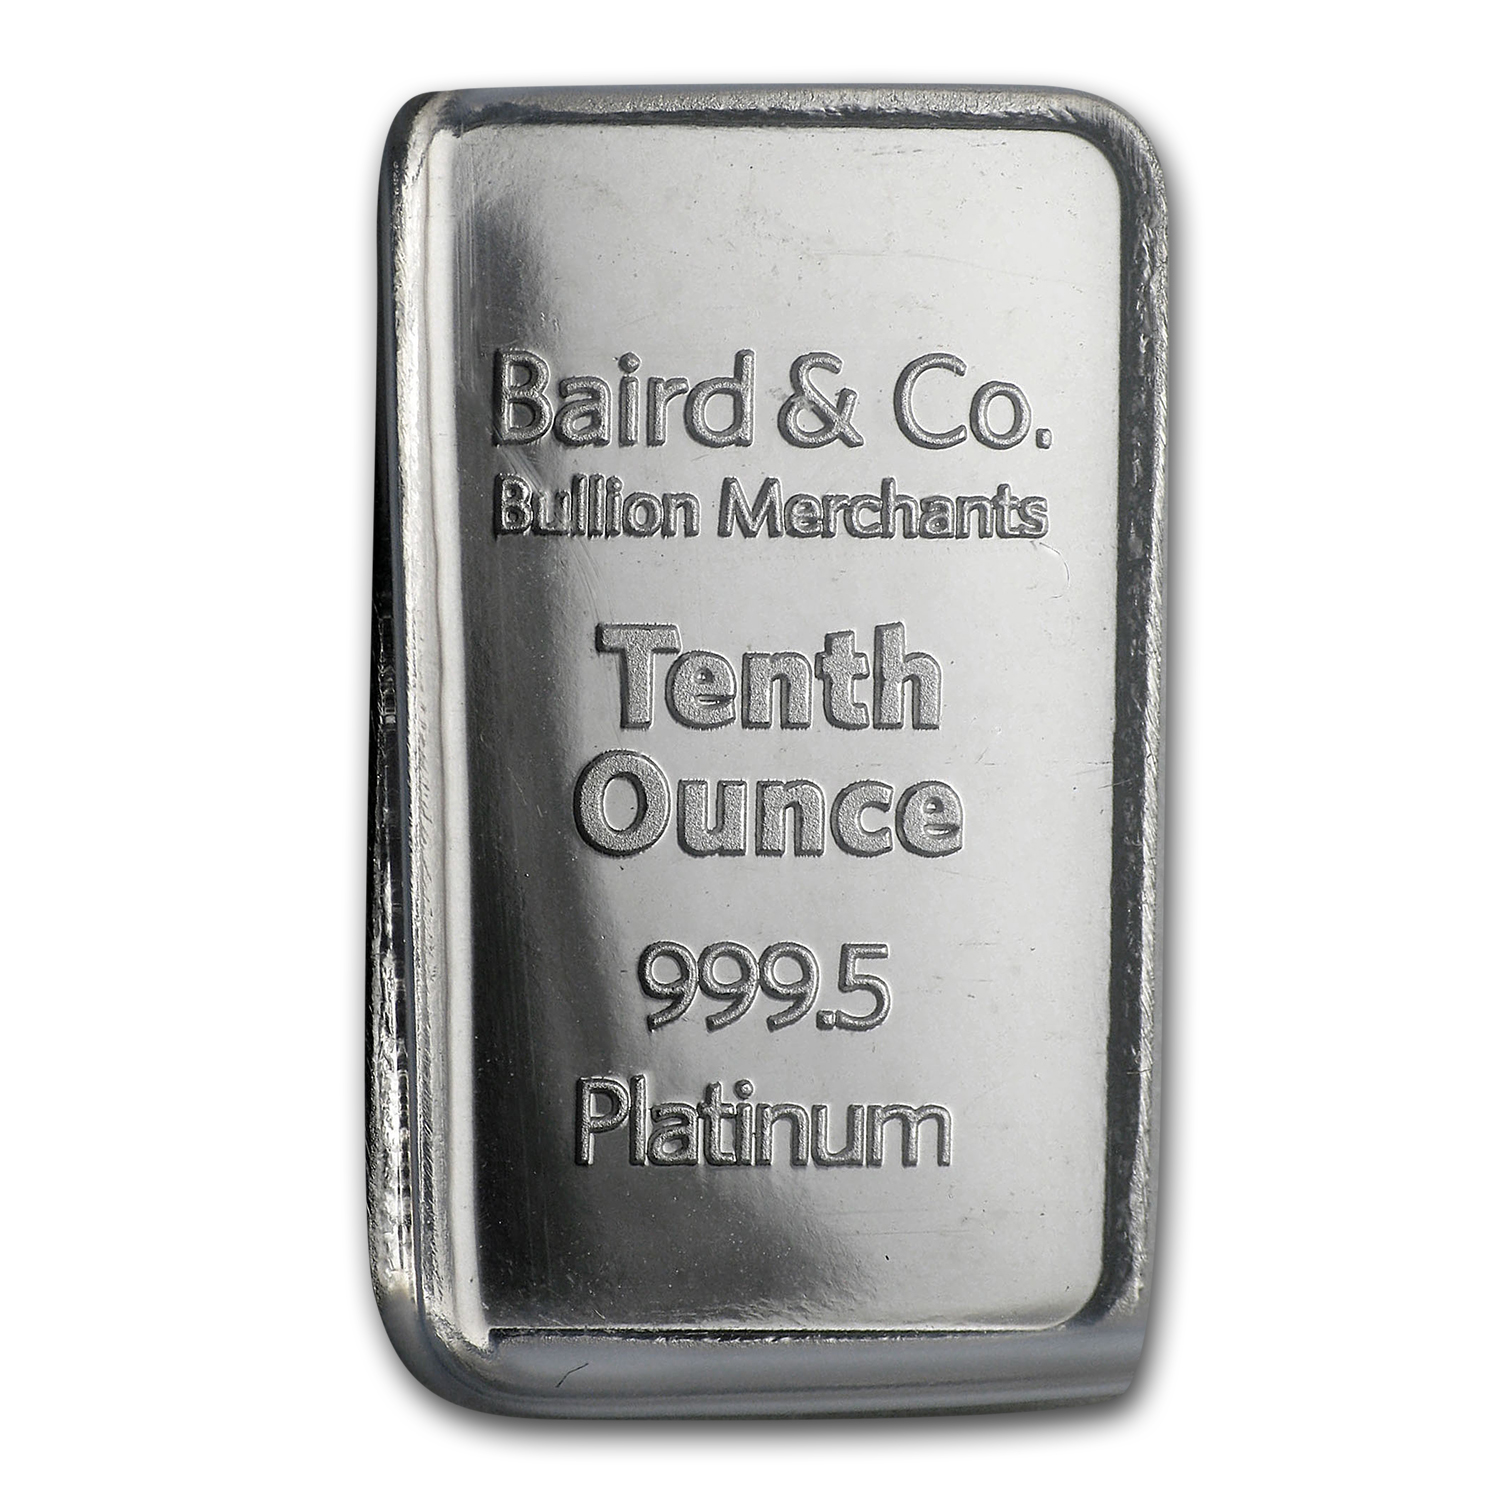 1/10 oz Platinum Bar - Baird & Co. (In Assay)